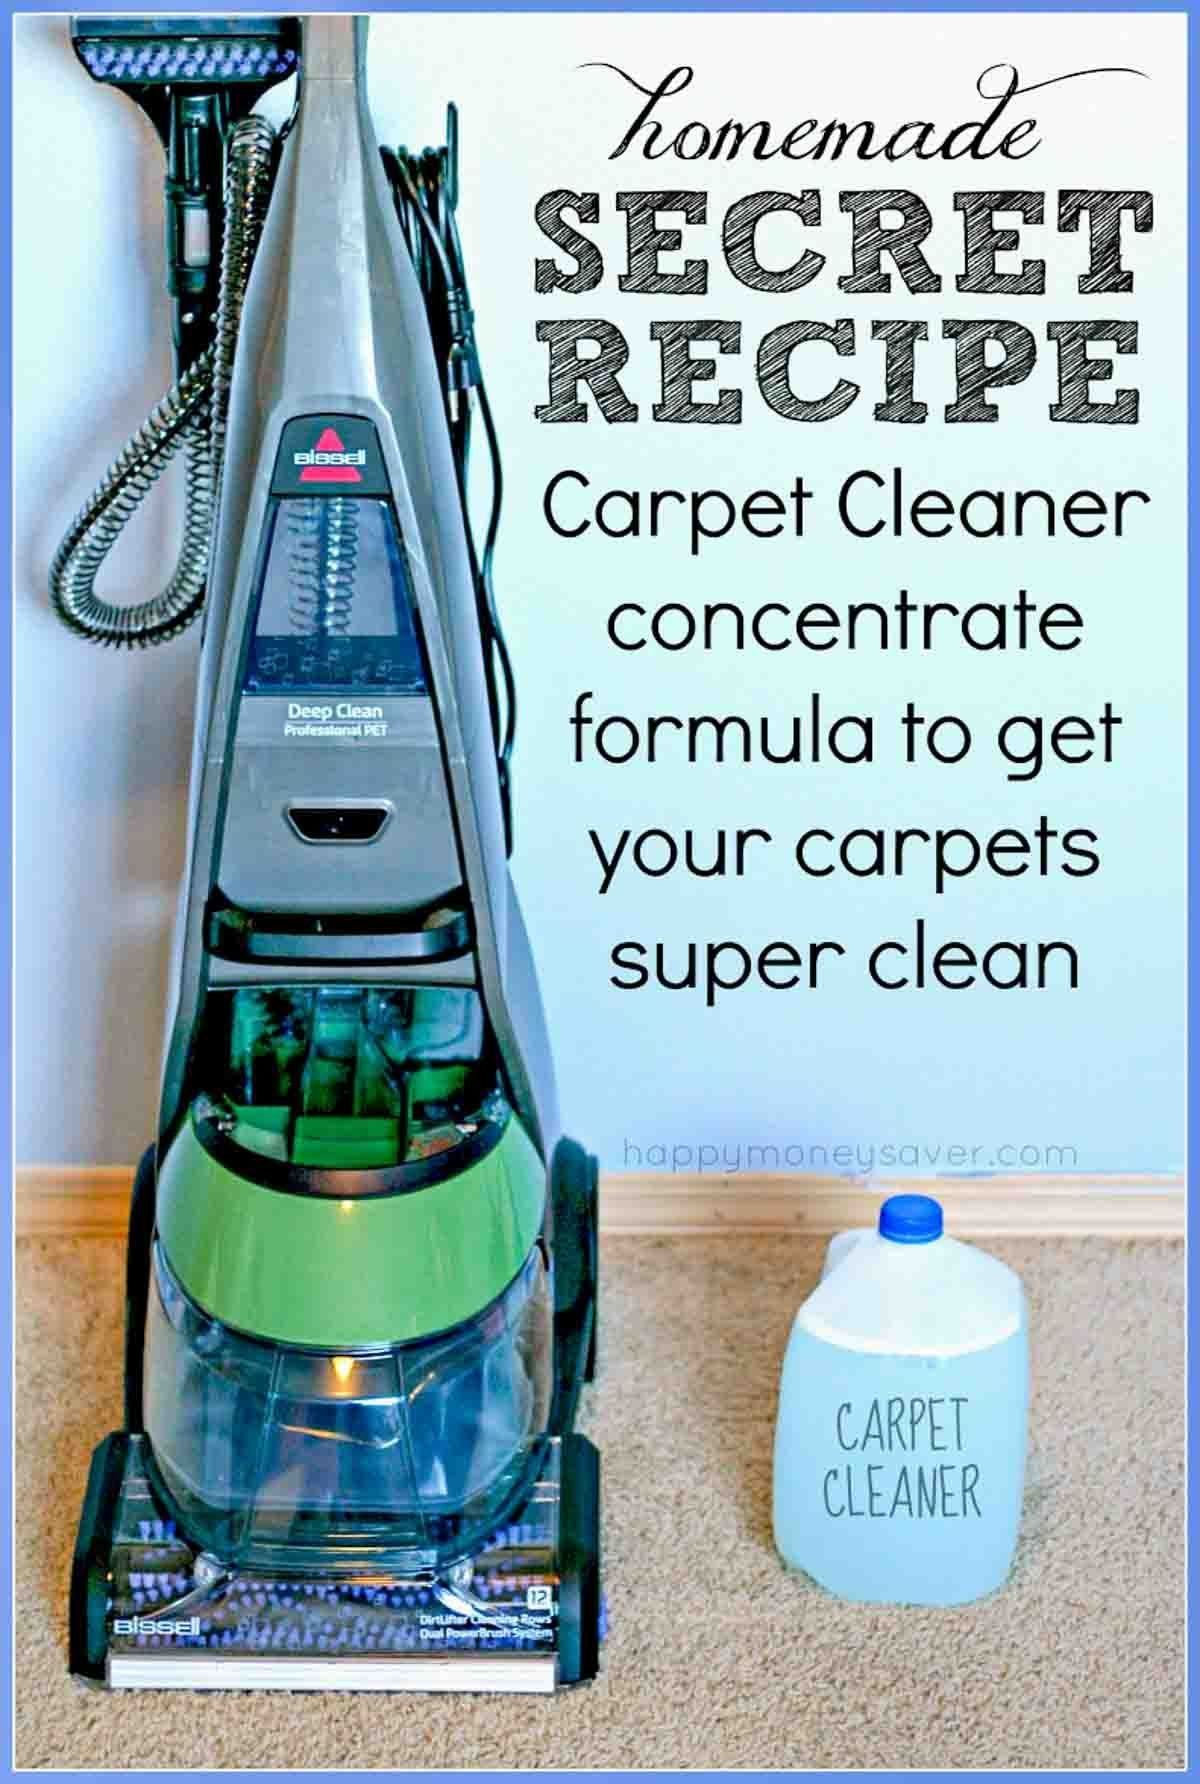 Pin By Coolthings On Cleaning In 2020 Homemade Carpet Cleaning Solution Carpet Cleaner Solution Carpet Cleaner Homemade